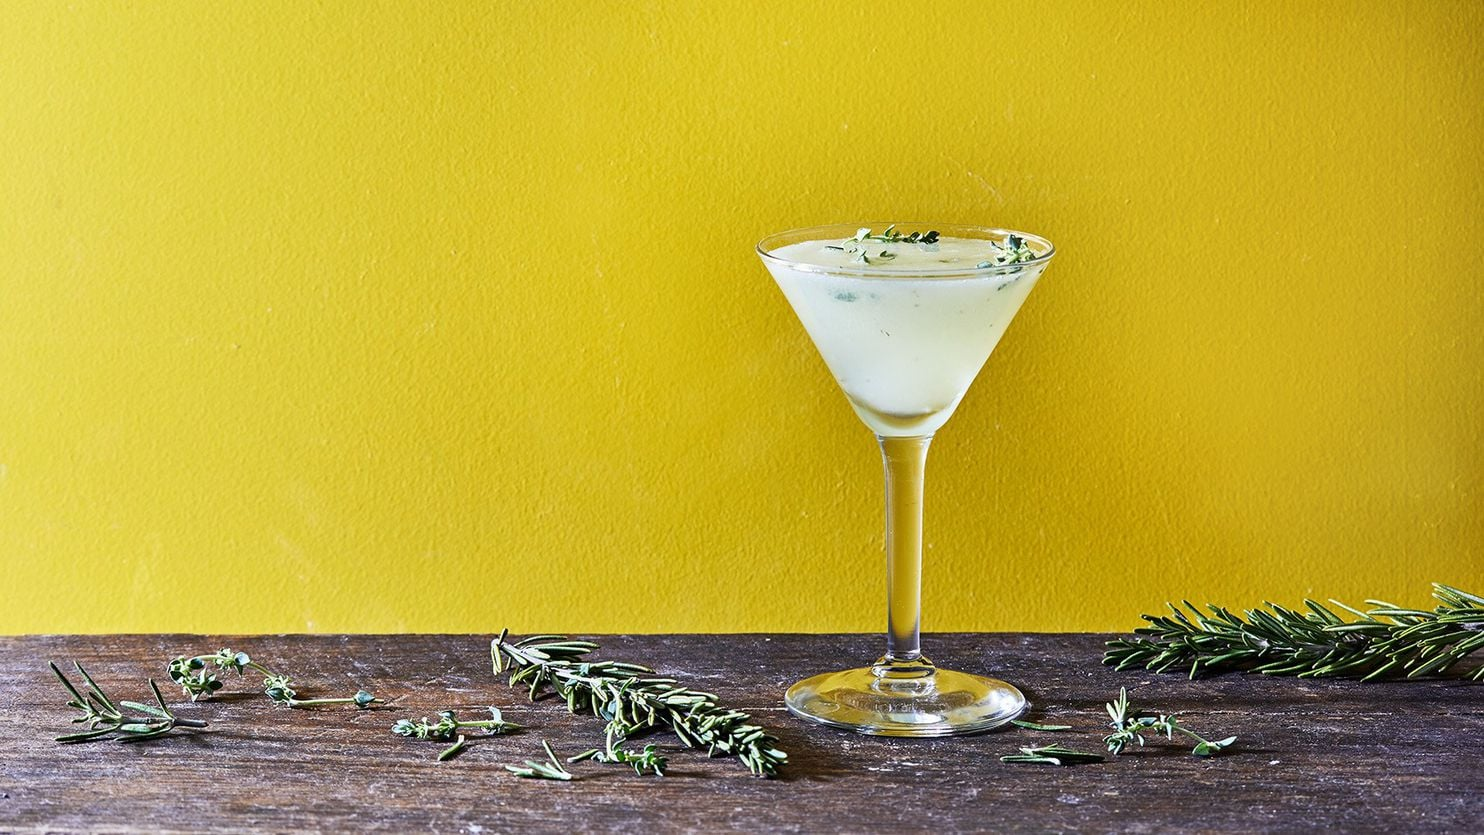 5 Simple Cocktail Recipes That Make Good Use Of Your Fresh Herbs The Washington Post